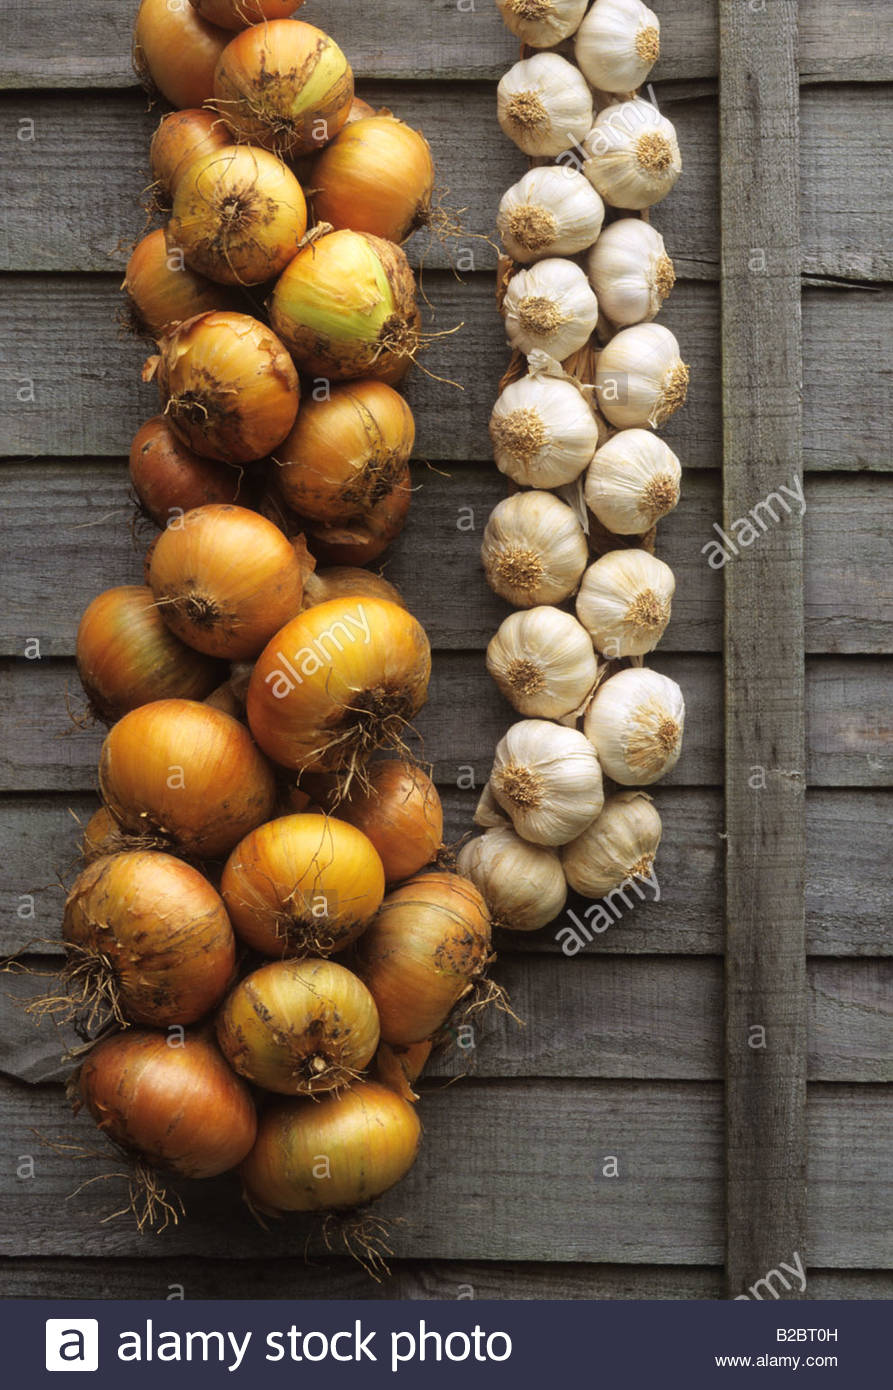 strings of onions and garlic hanging up in garden shed - Stock Image